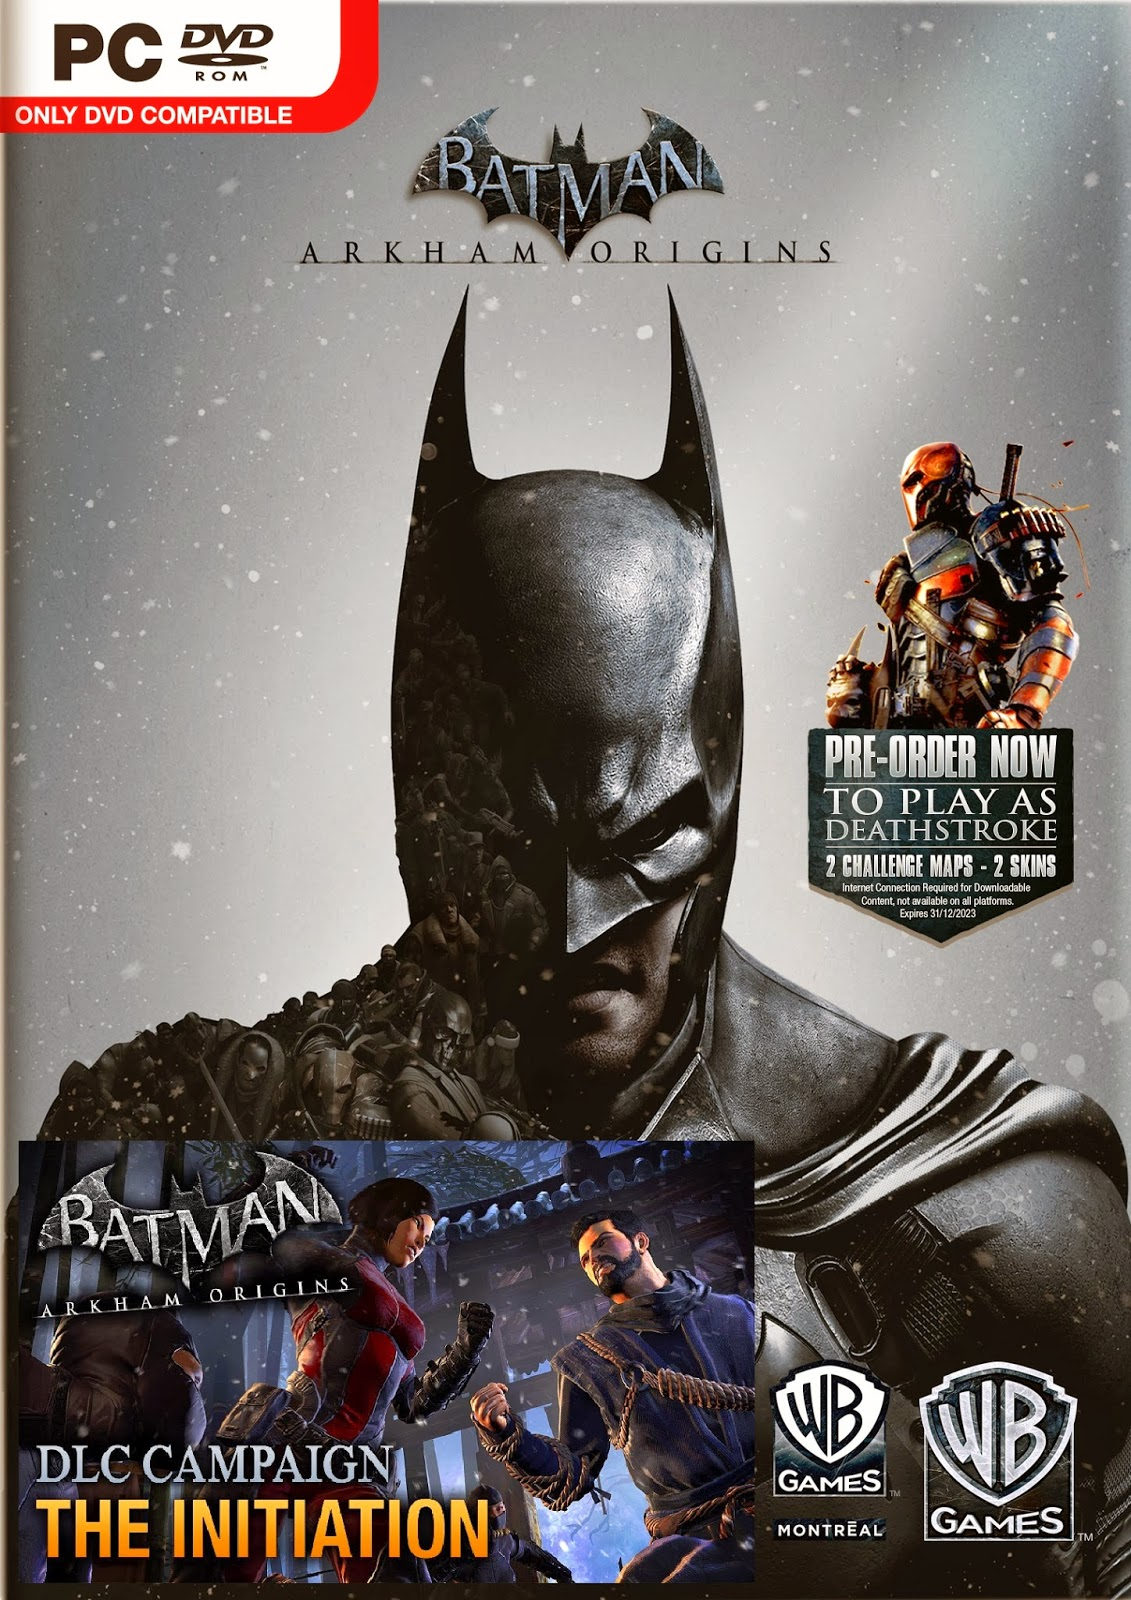 Dream Games: Batman Arkham Origins + Initiation DLC